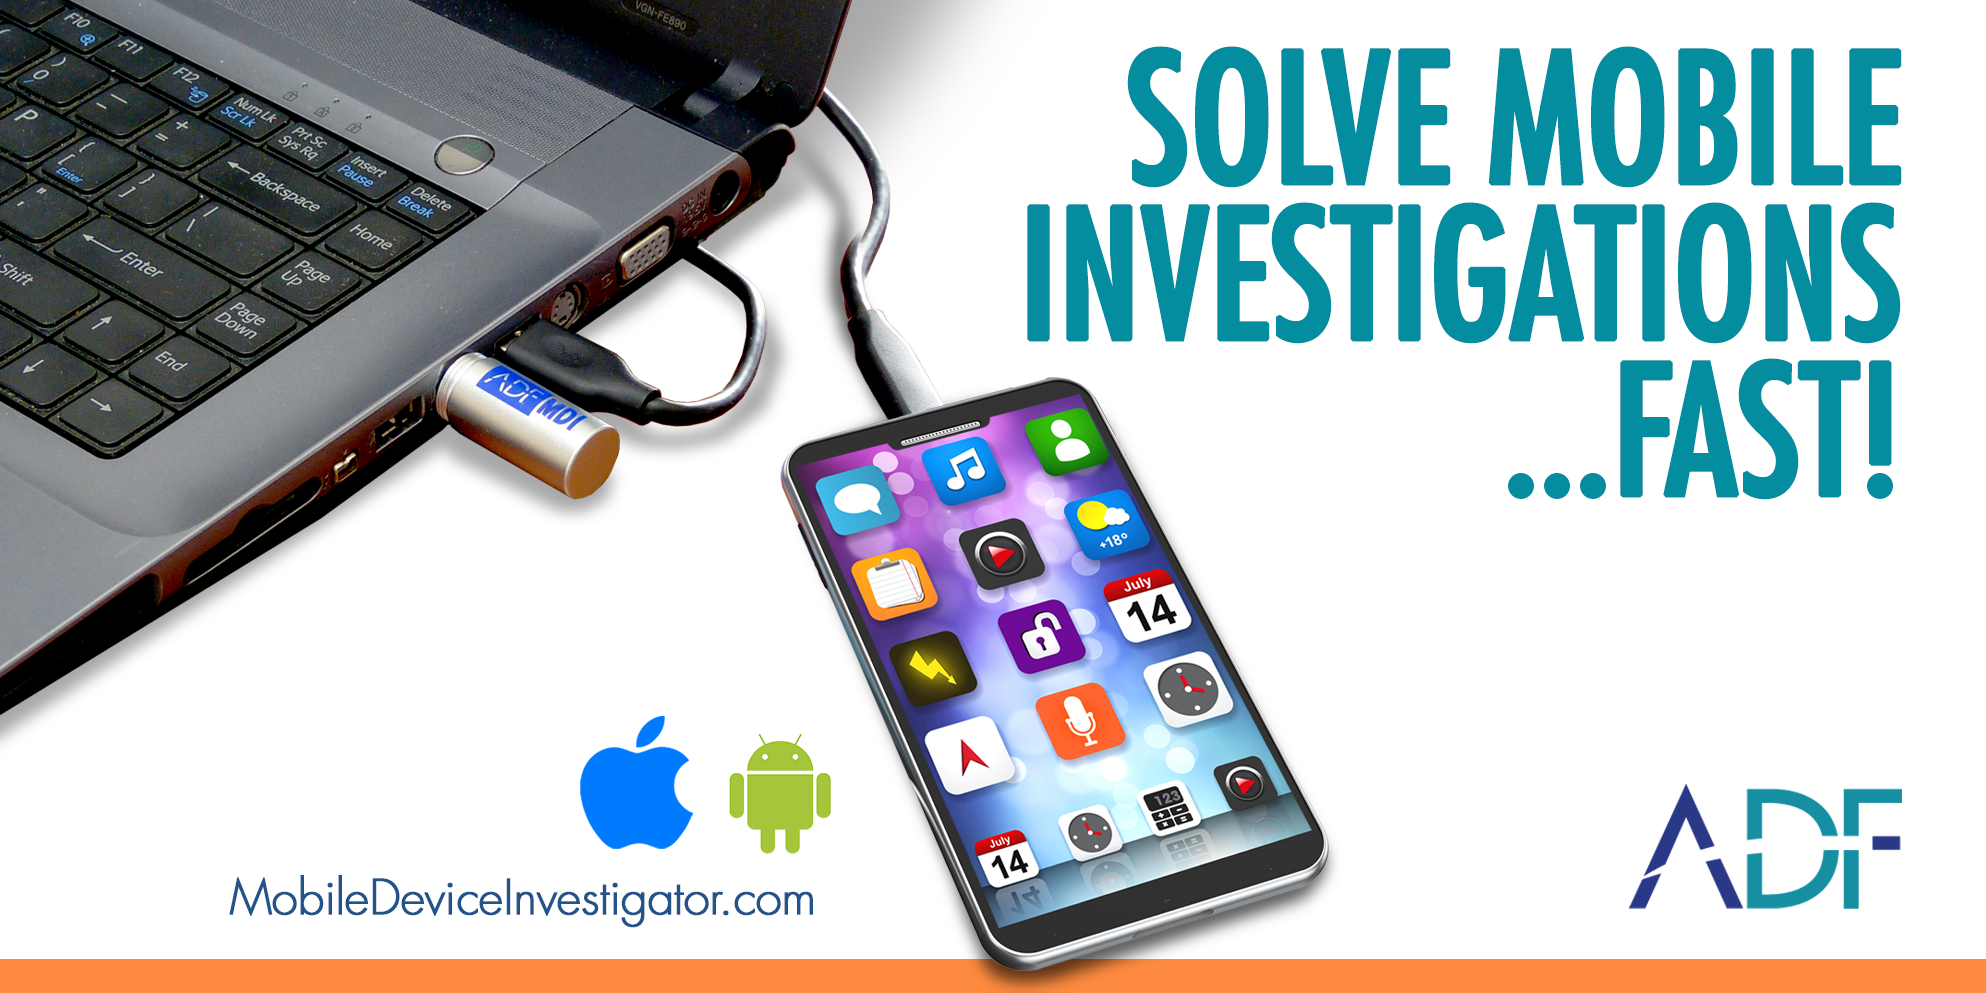 New Mobile Device Investigator™ iOS and Android Smartphones